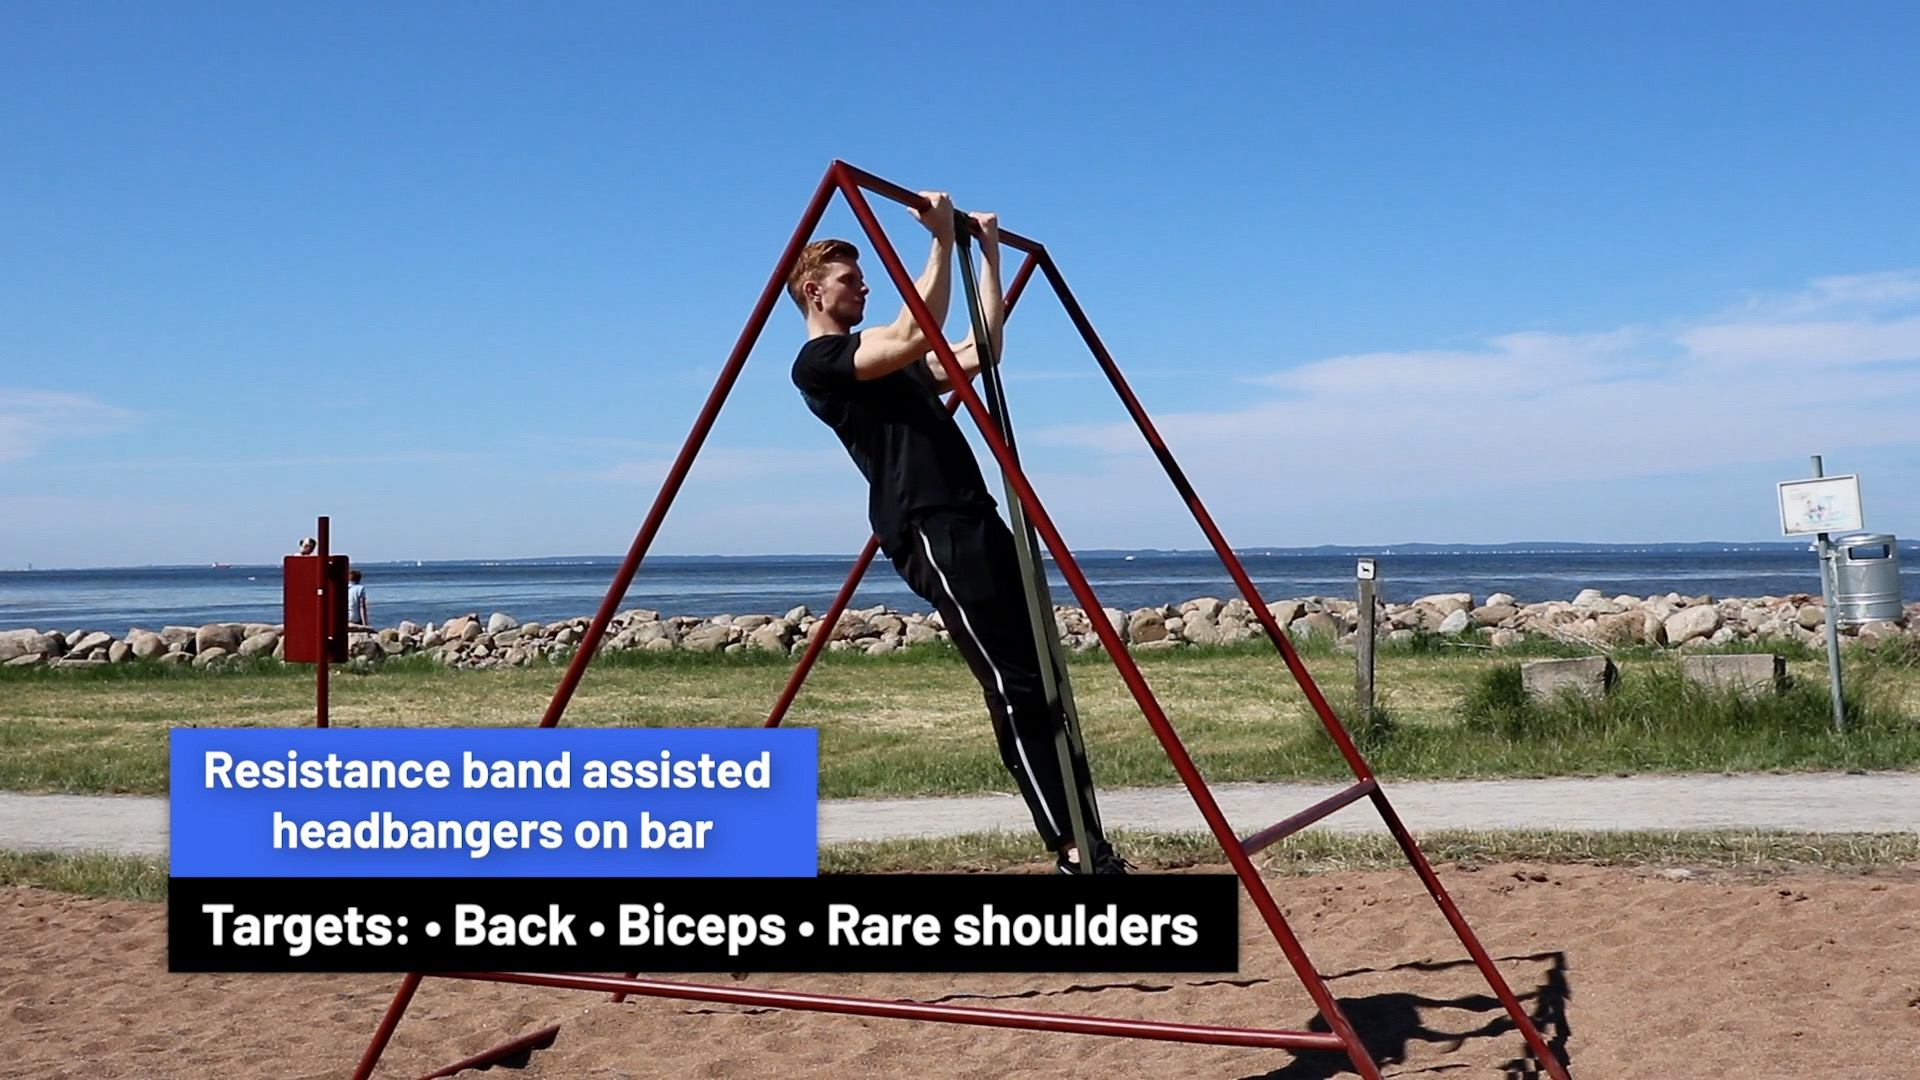 Resistance band assisted headbangers on bar